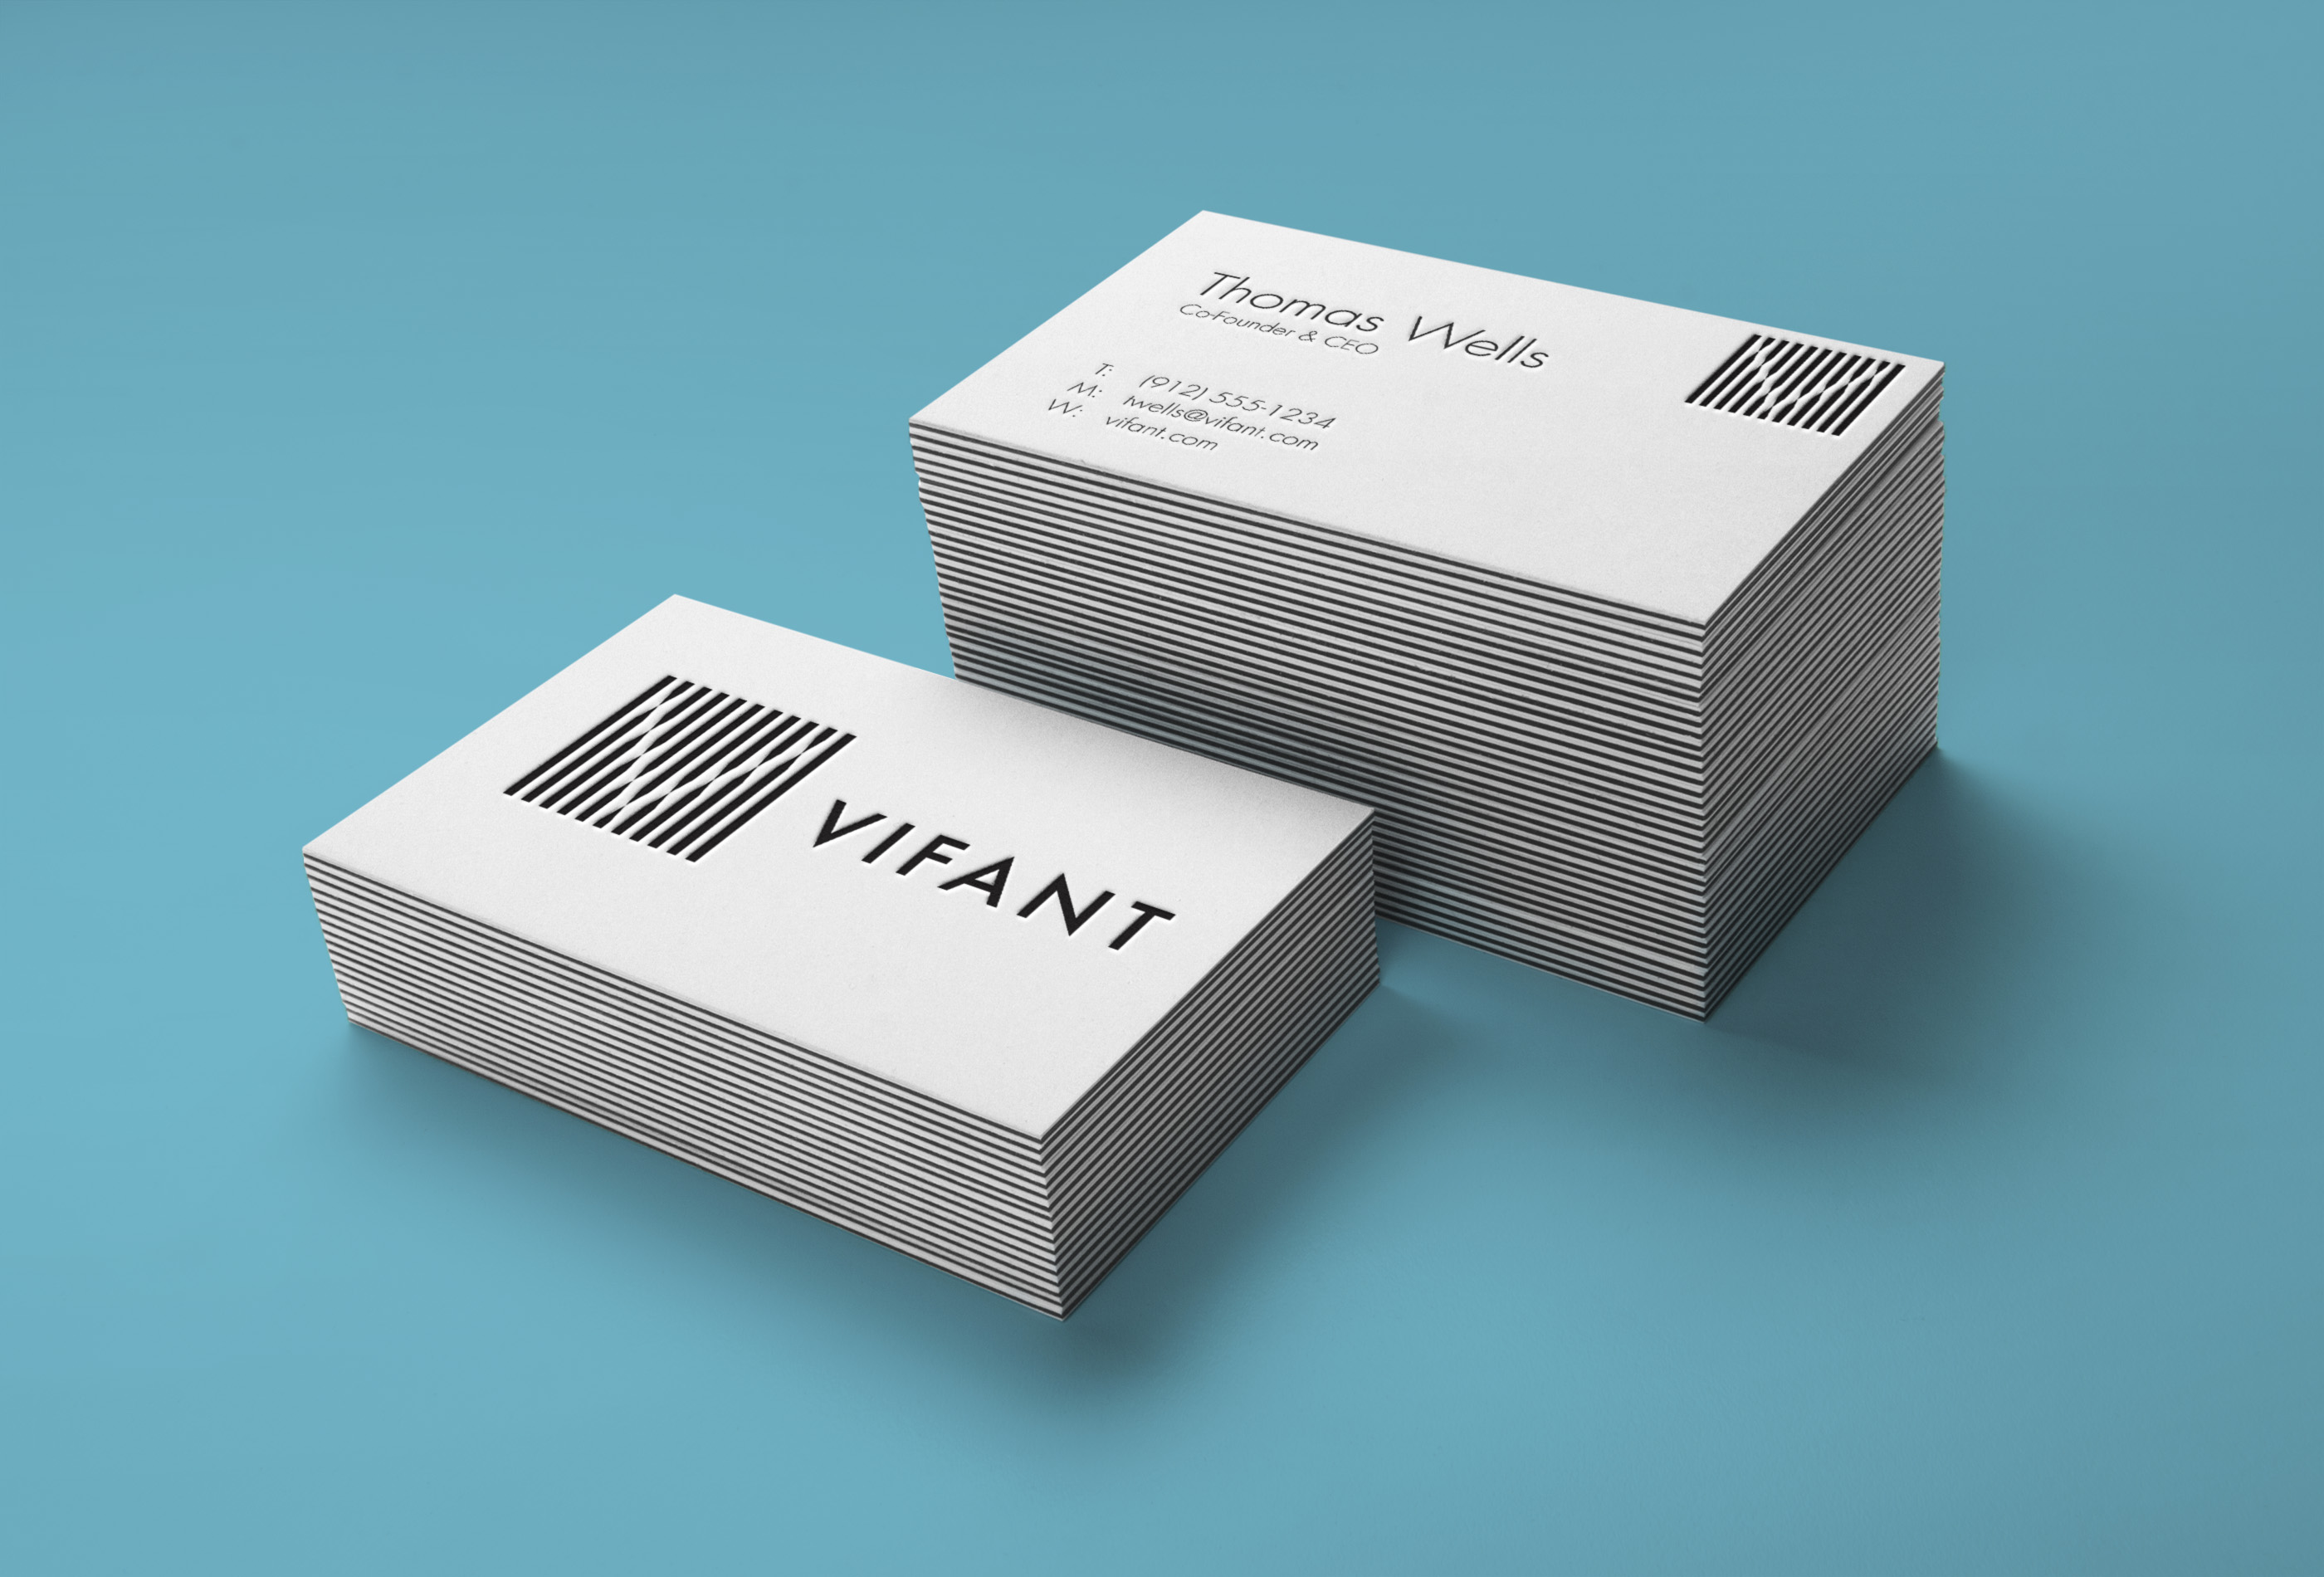 Vifant business card_WB